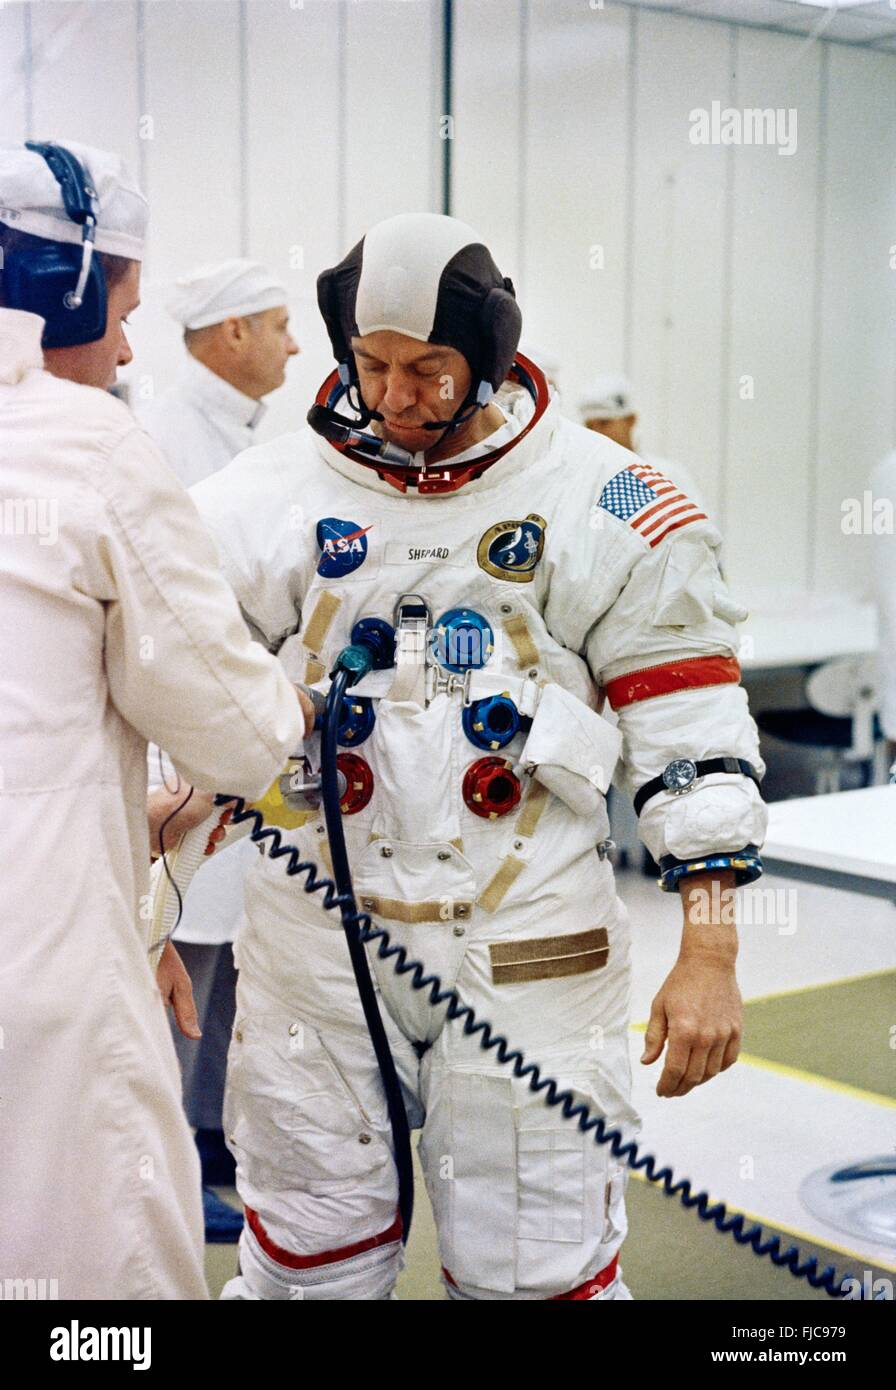 NASA Apollo 14 astronaut Commander Alan B. Shepard Jr., is assisted in putting on his spacesuit at the Kennedy Space - Stock Image